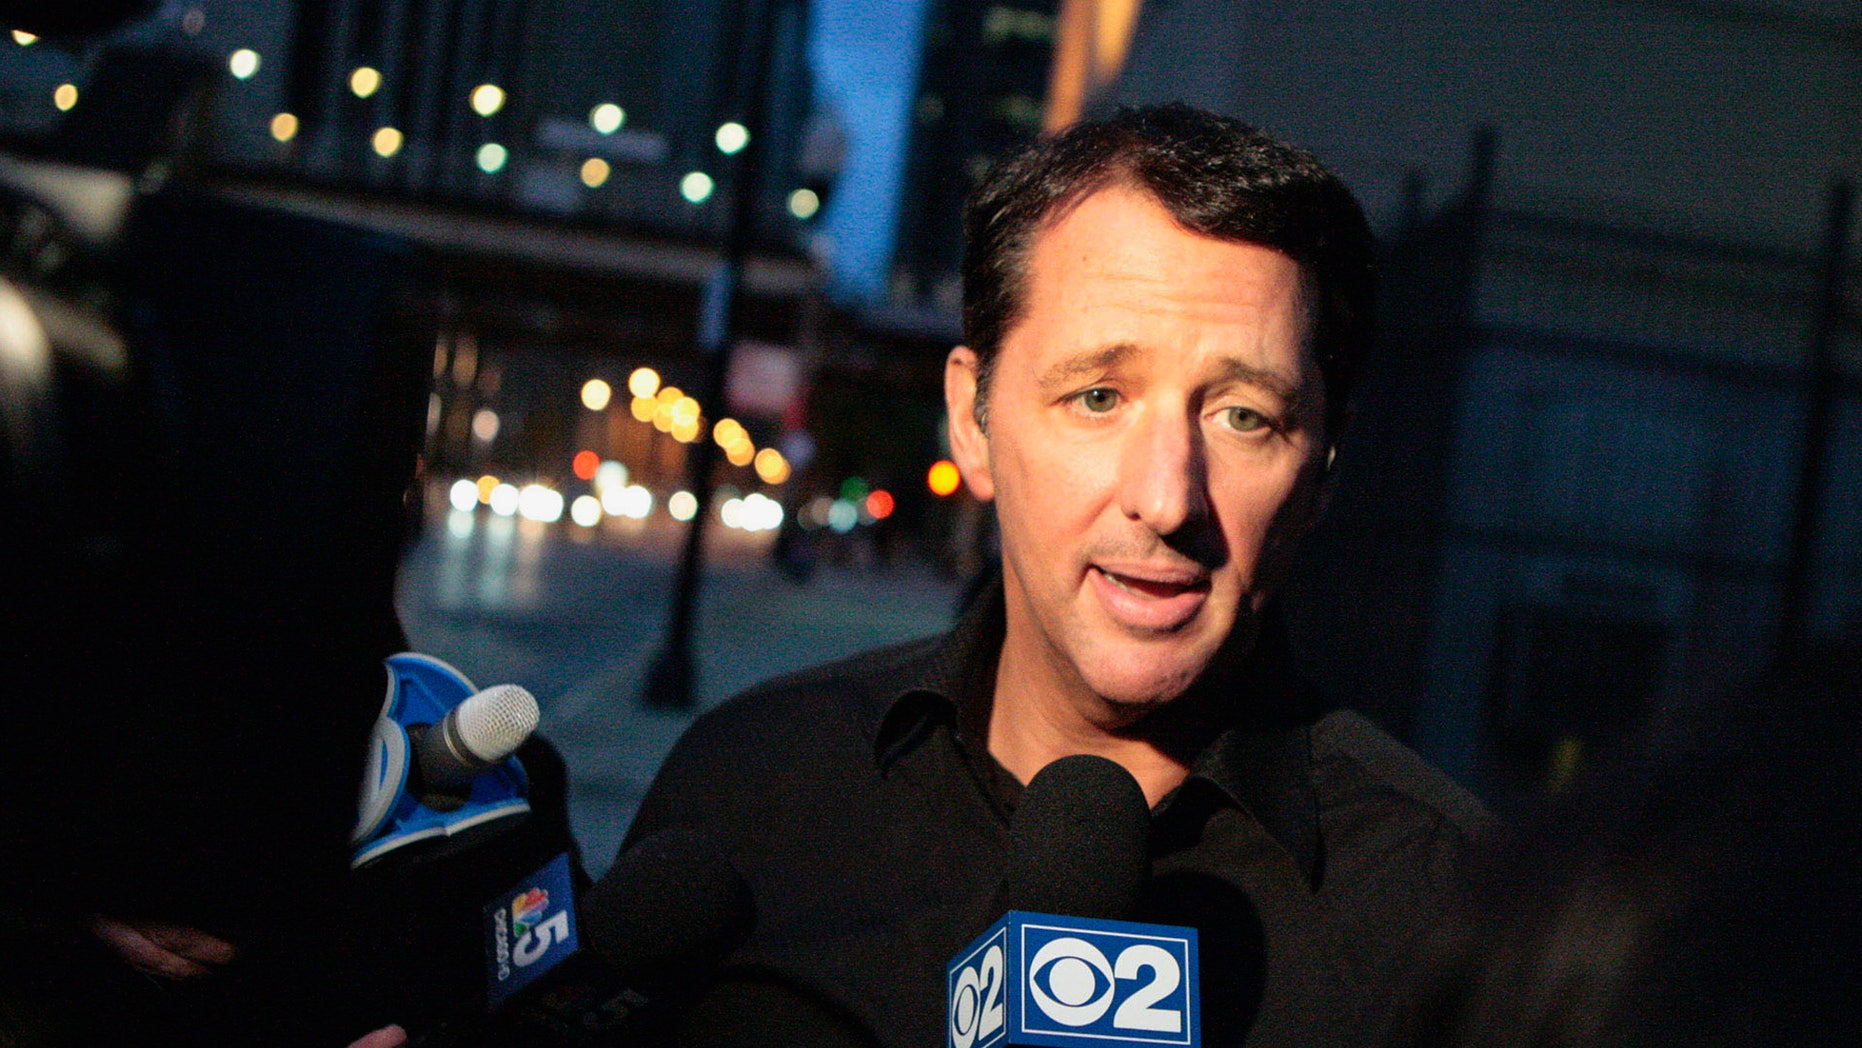 In this photo taken on Oct. 28, 2013, television infomercial pitchman Kevin Trudeau speaks to the media after leaving the Metropolitan Correctional Center in downtown Chicago. On Tuesday, Nov. 12, 2013, Trudeau's attorney and government attorneys began delivering closing arguments in his criminal contempt trial, after federal prosecutors spent nearly a week trying to prove the TV pitchman made false claims about his best-selling diet book. (AP Photo/Sun-Times Media, Michael Jarecki) MANDATORY CREDIT, MAGS OUT